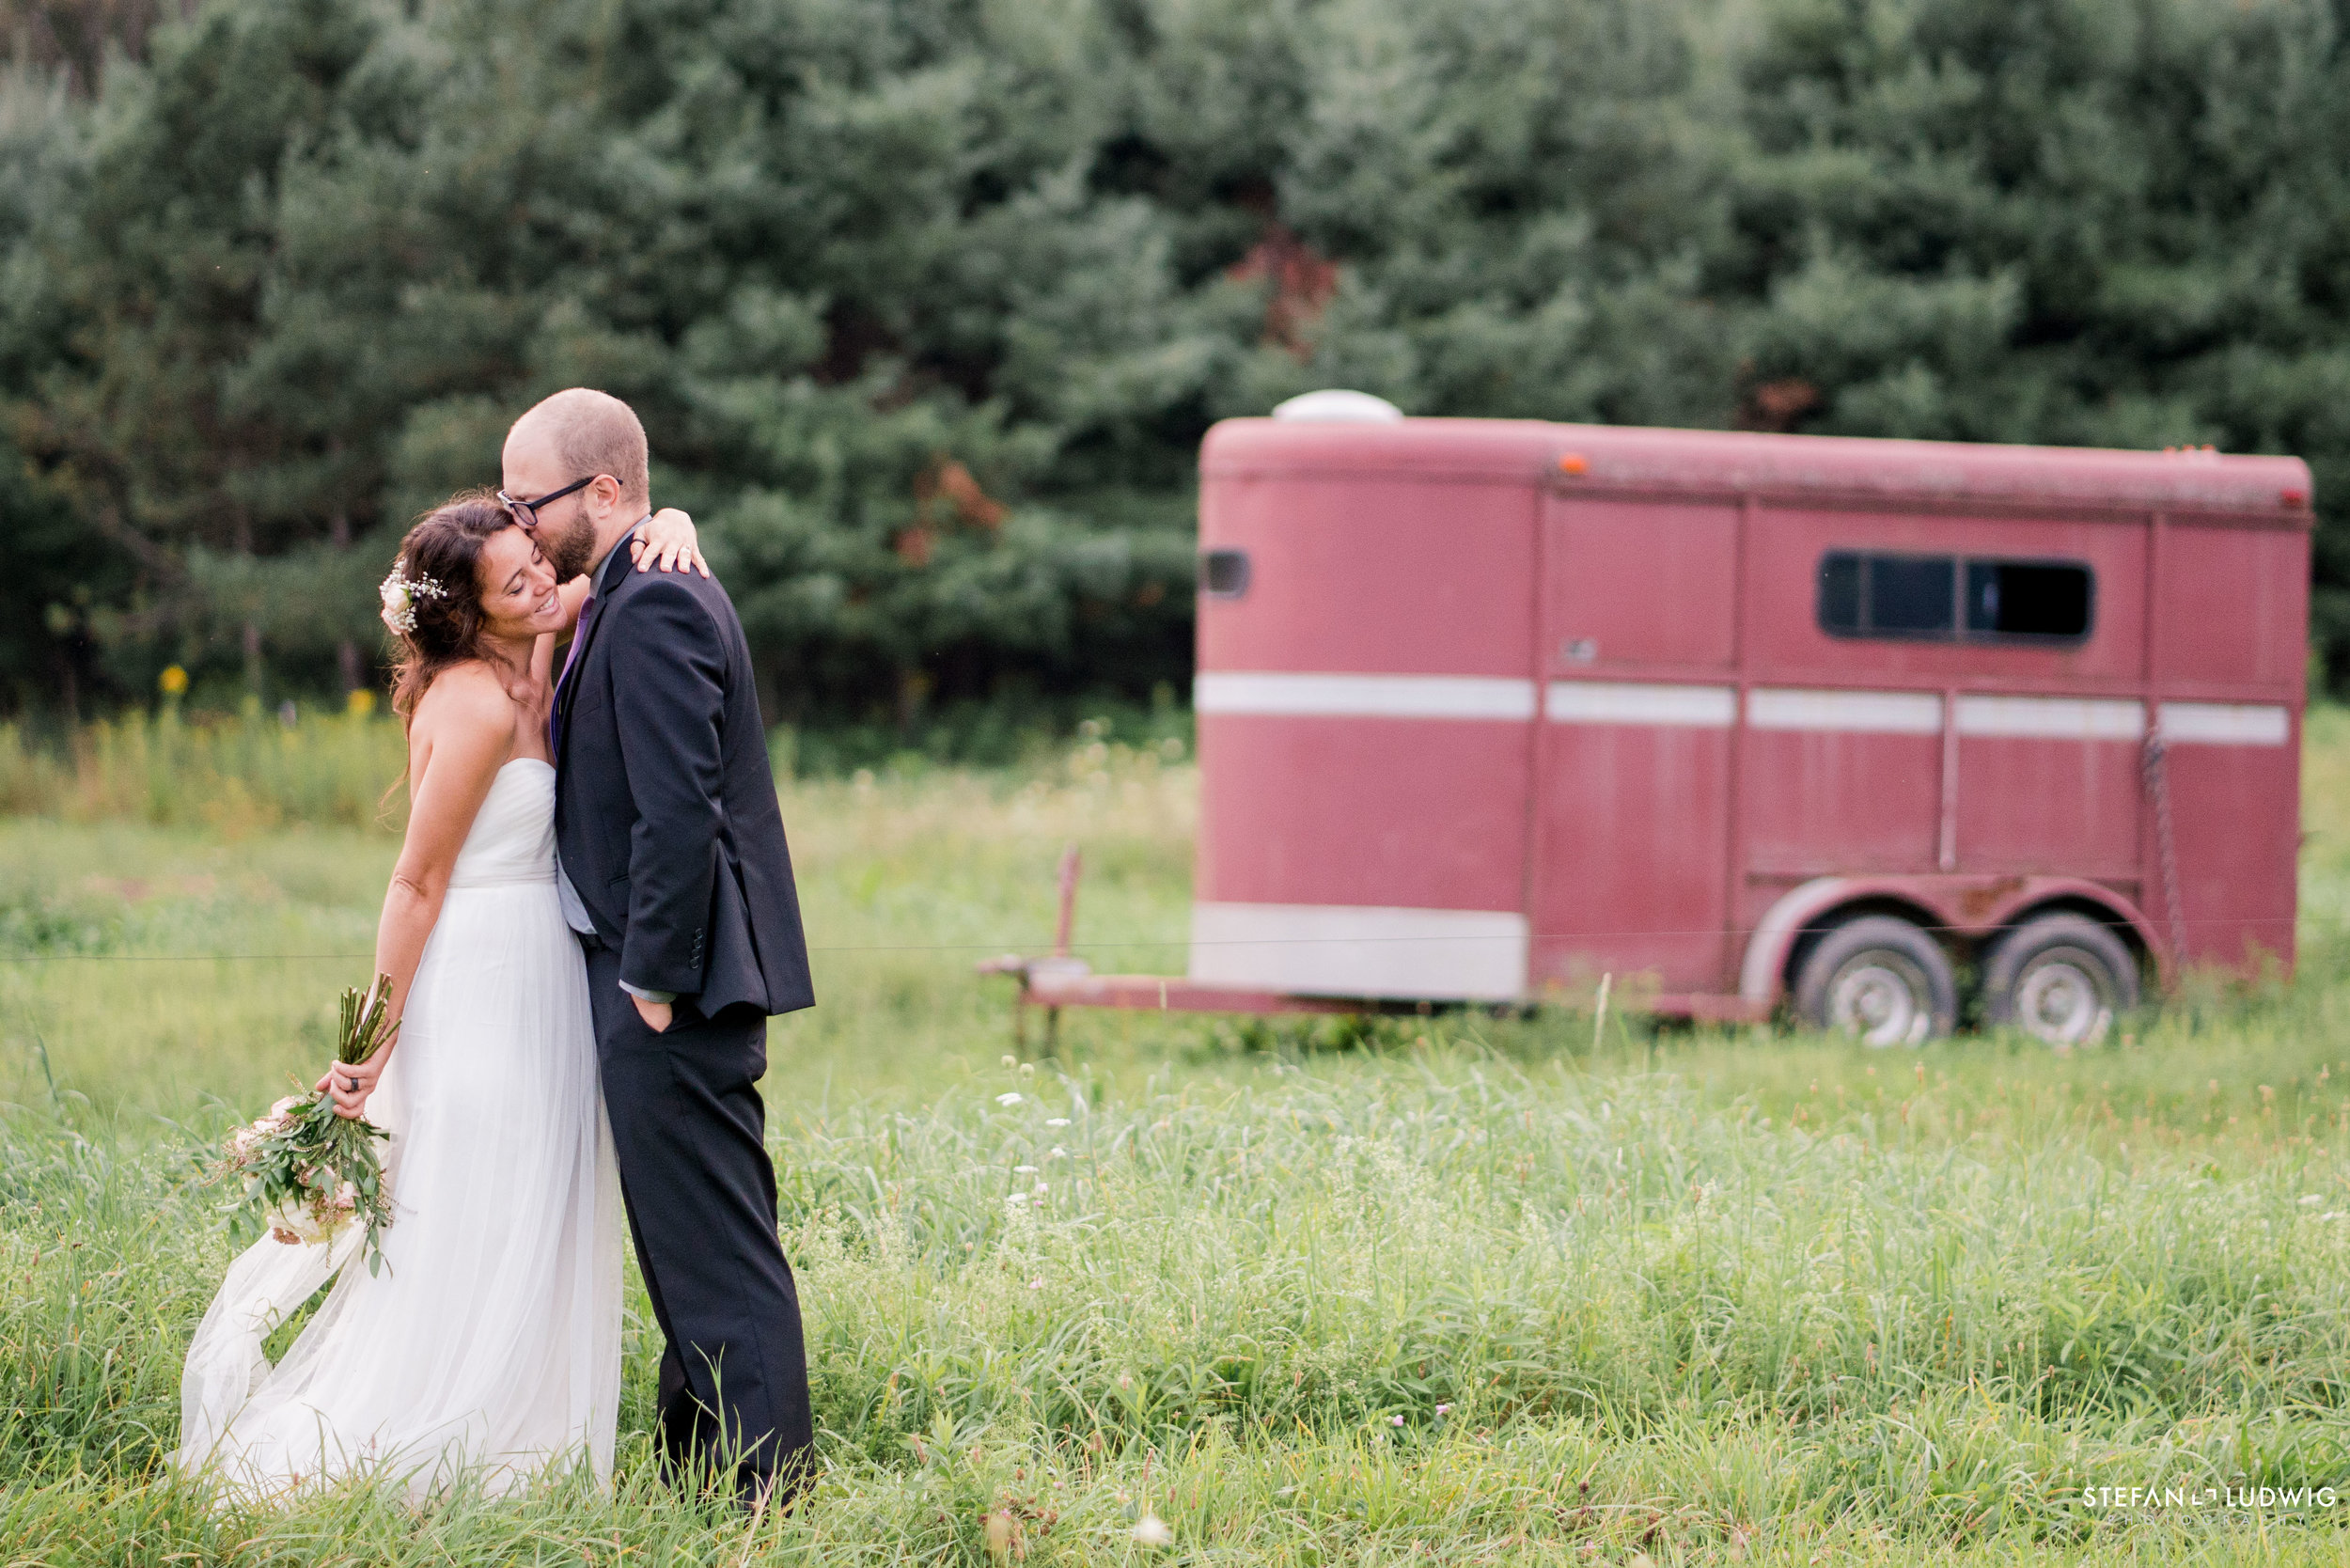 Blog Wedding Photography Mariana and John in Ellicottville NY by Stefan Ludwig Photography-66.jpg